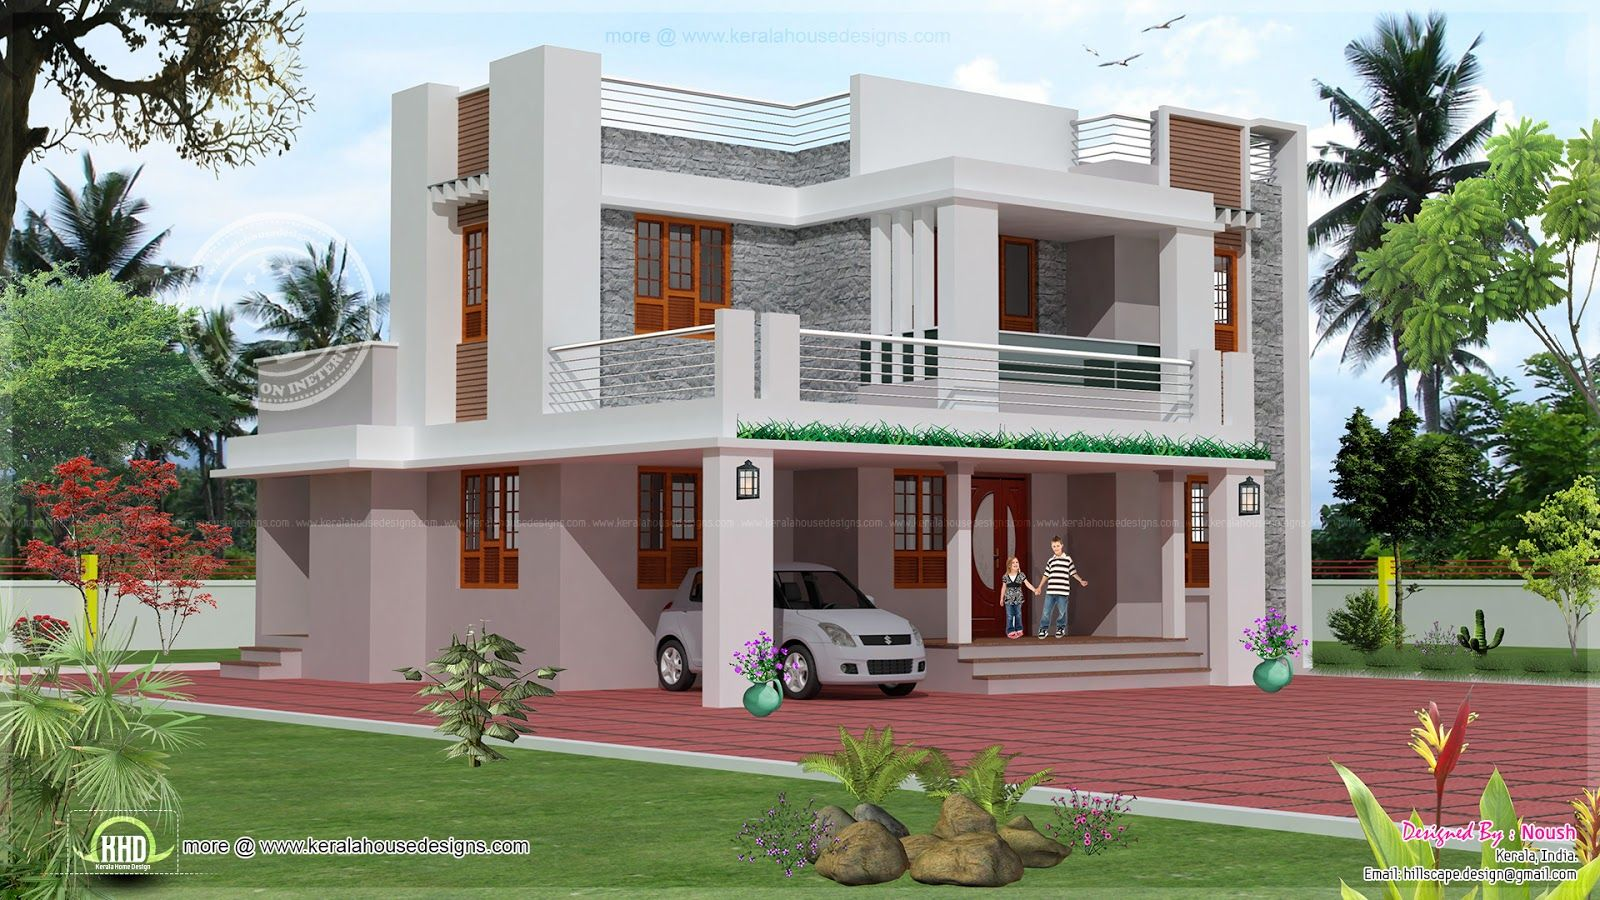 Astounding Bedroom 2 Story House Exterior Design Kerala 2 Storey Largest Home Design Picture Inspirations Pitcheantrous